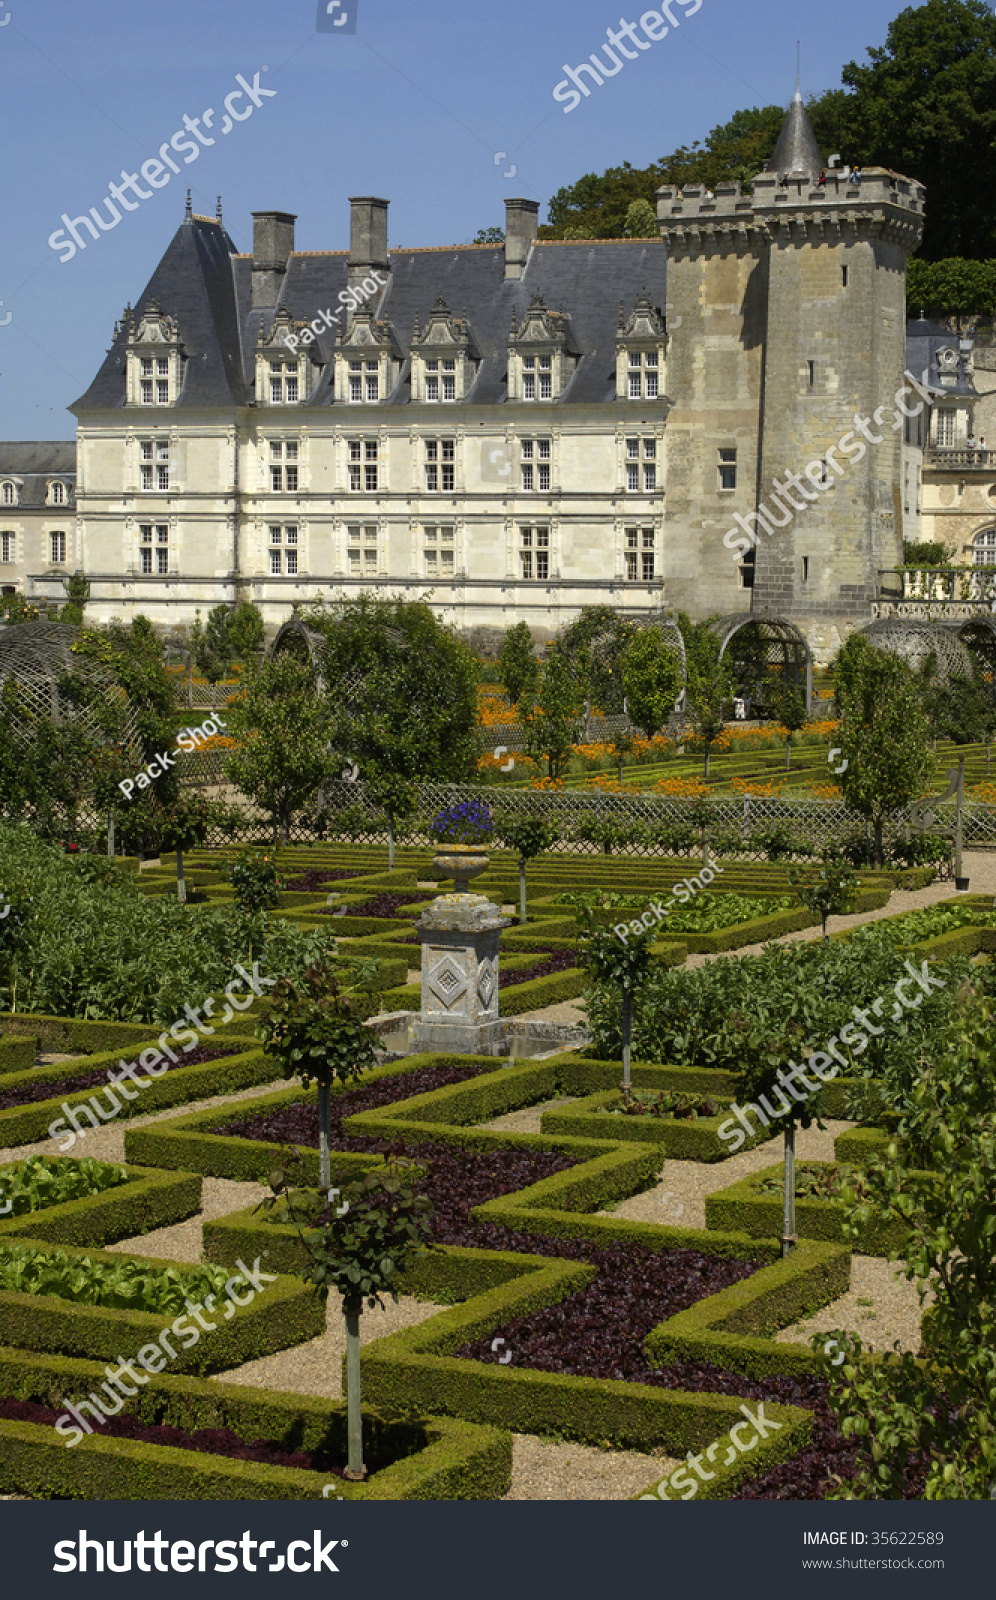 France, French formal garden at the castle of Villandry | EZ Canvas